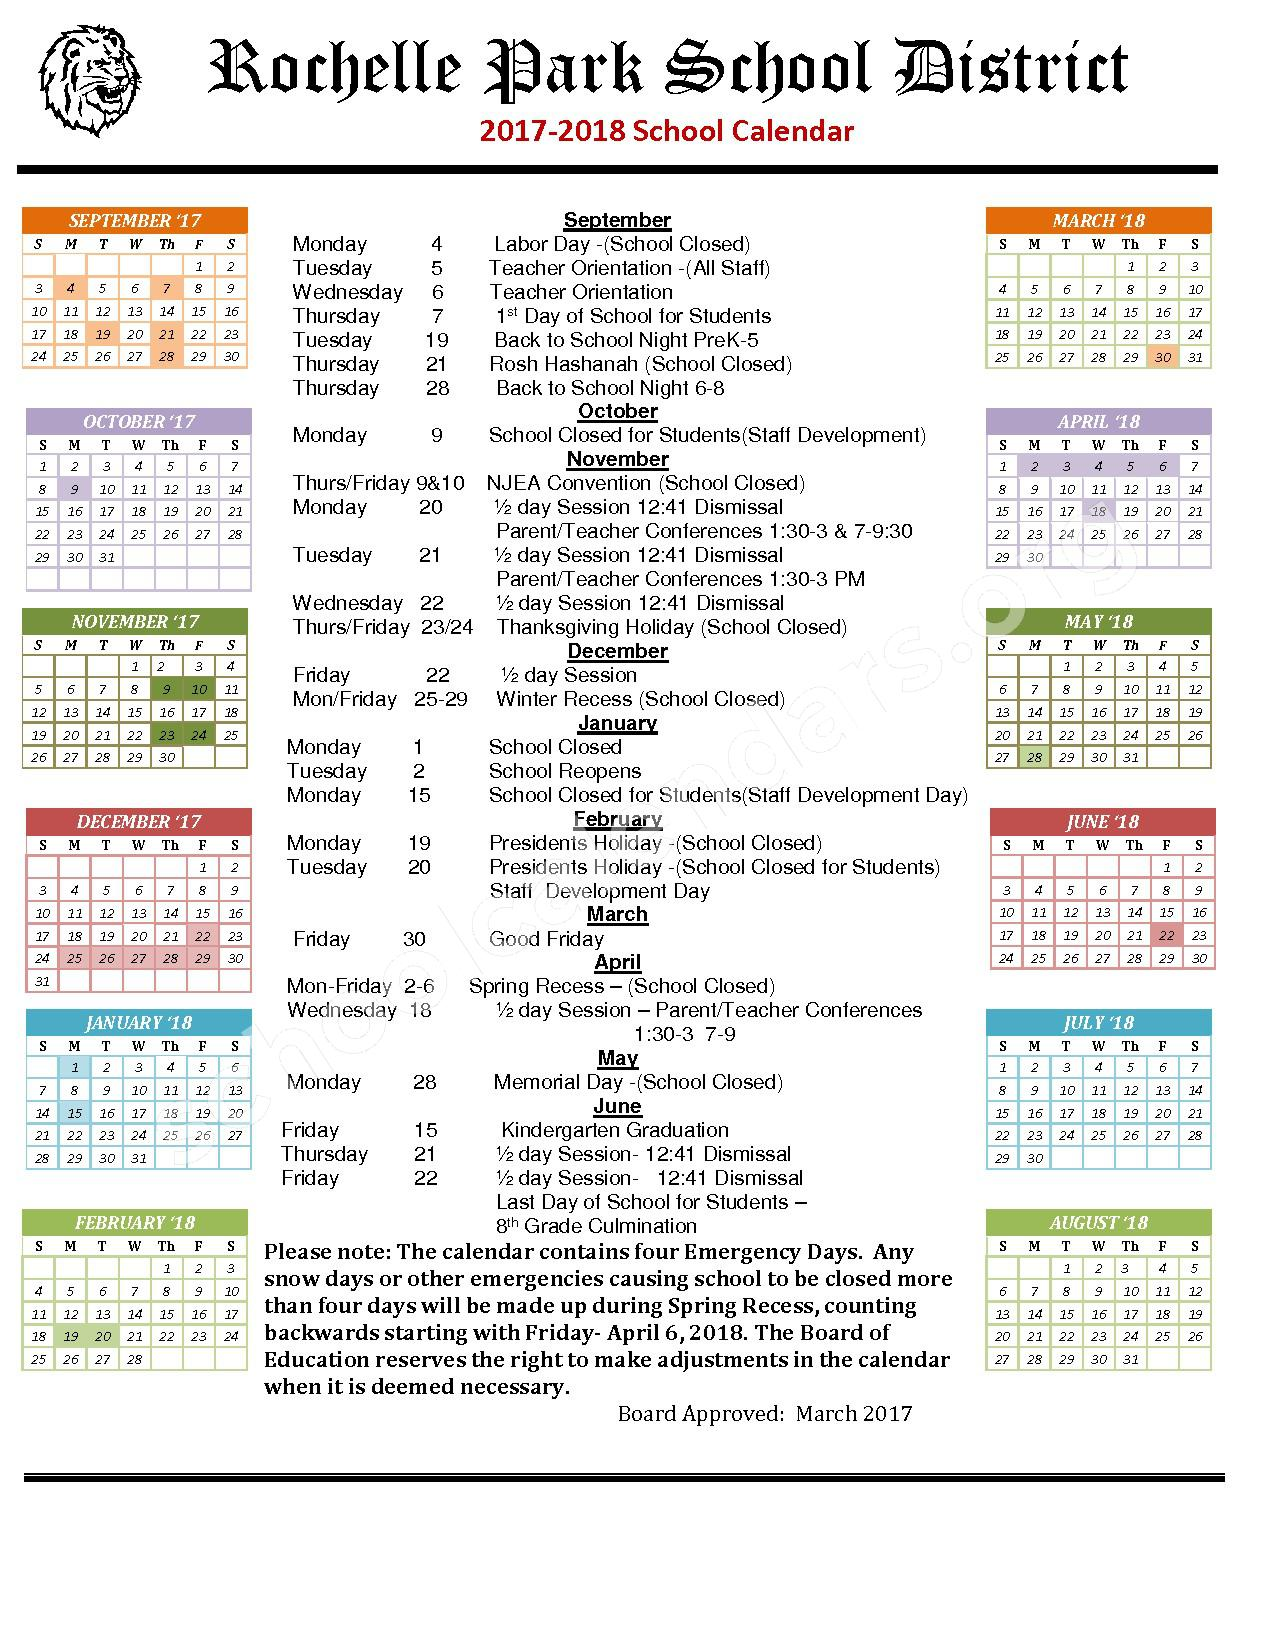 2017 - 2018 School Calendar – Rochelle Park School District – page 1